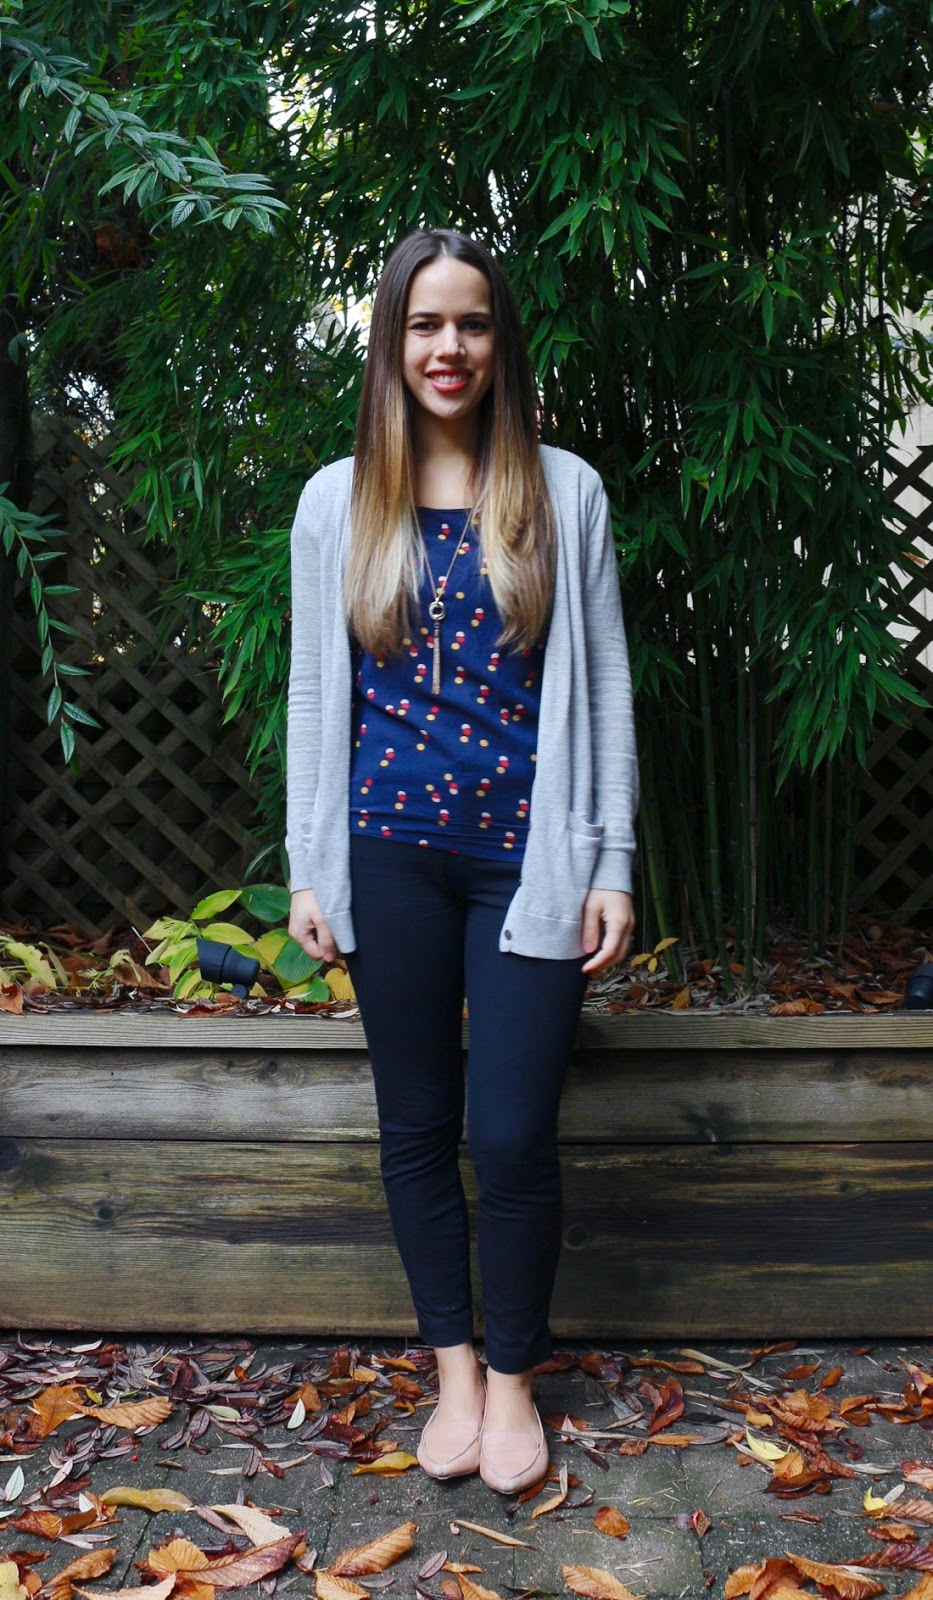 Jules in Flats - Fun Dot Top with Cardigan and Black Ankle Pants (Business Casual Fall Workwear on a Budget)